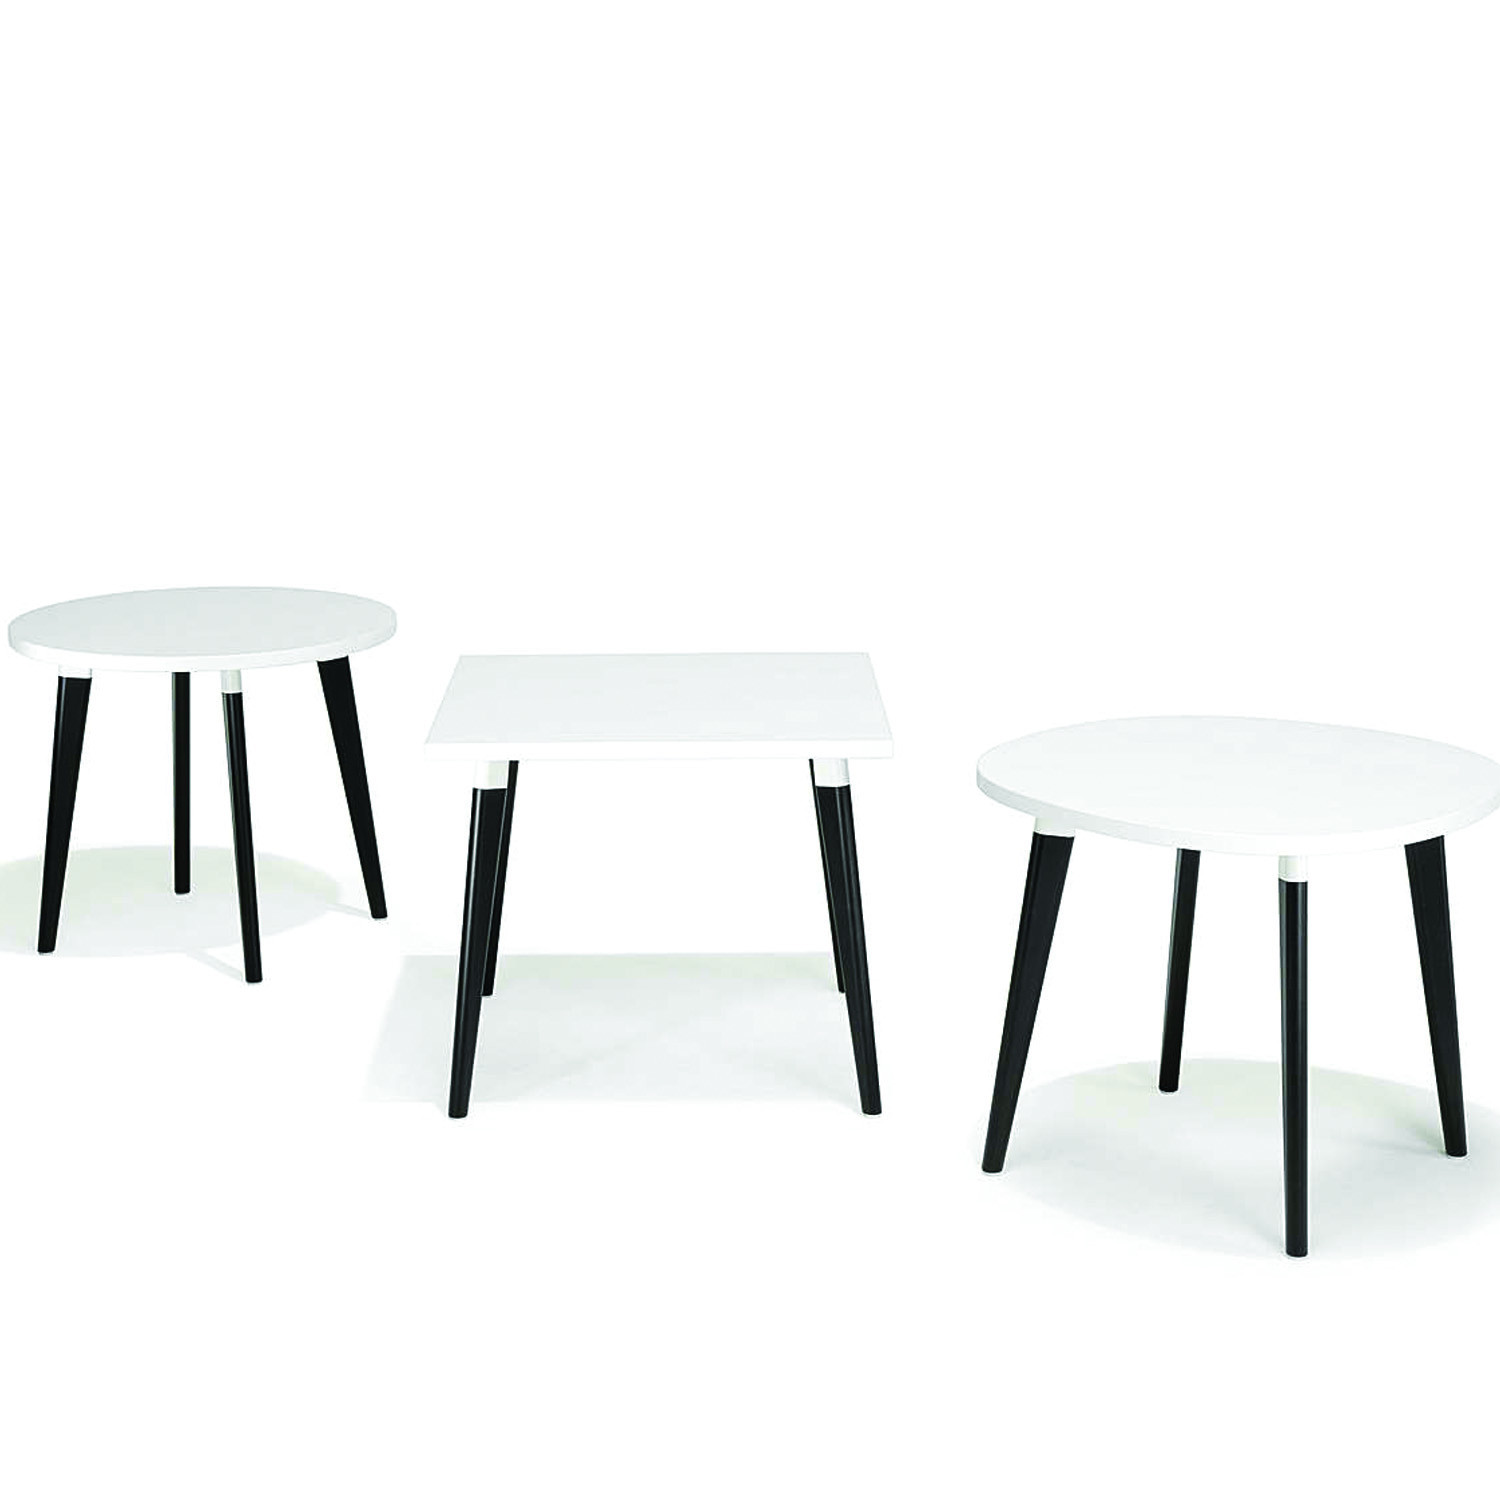 6100 San_Siro Tables are available in a variety of top shapes